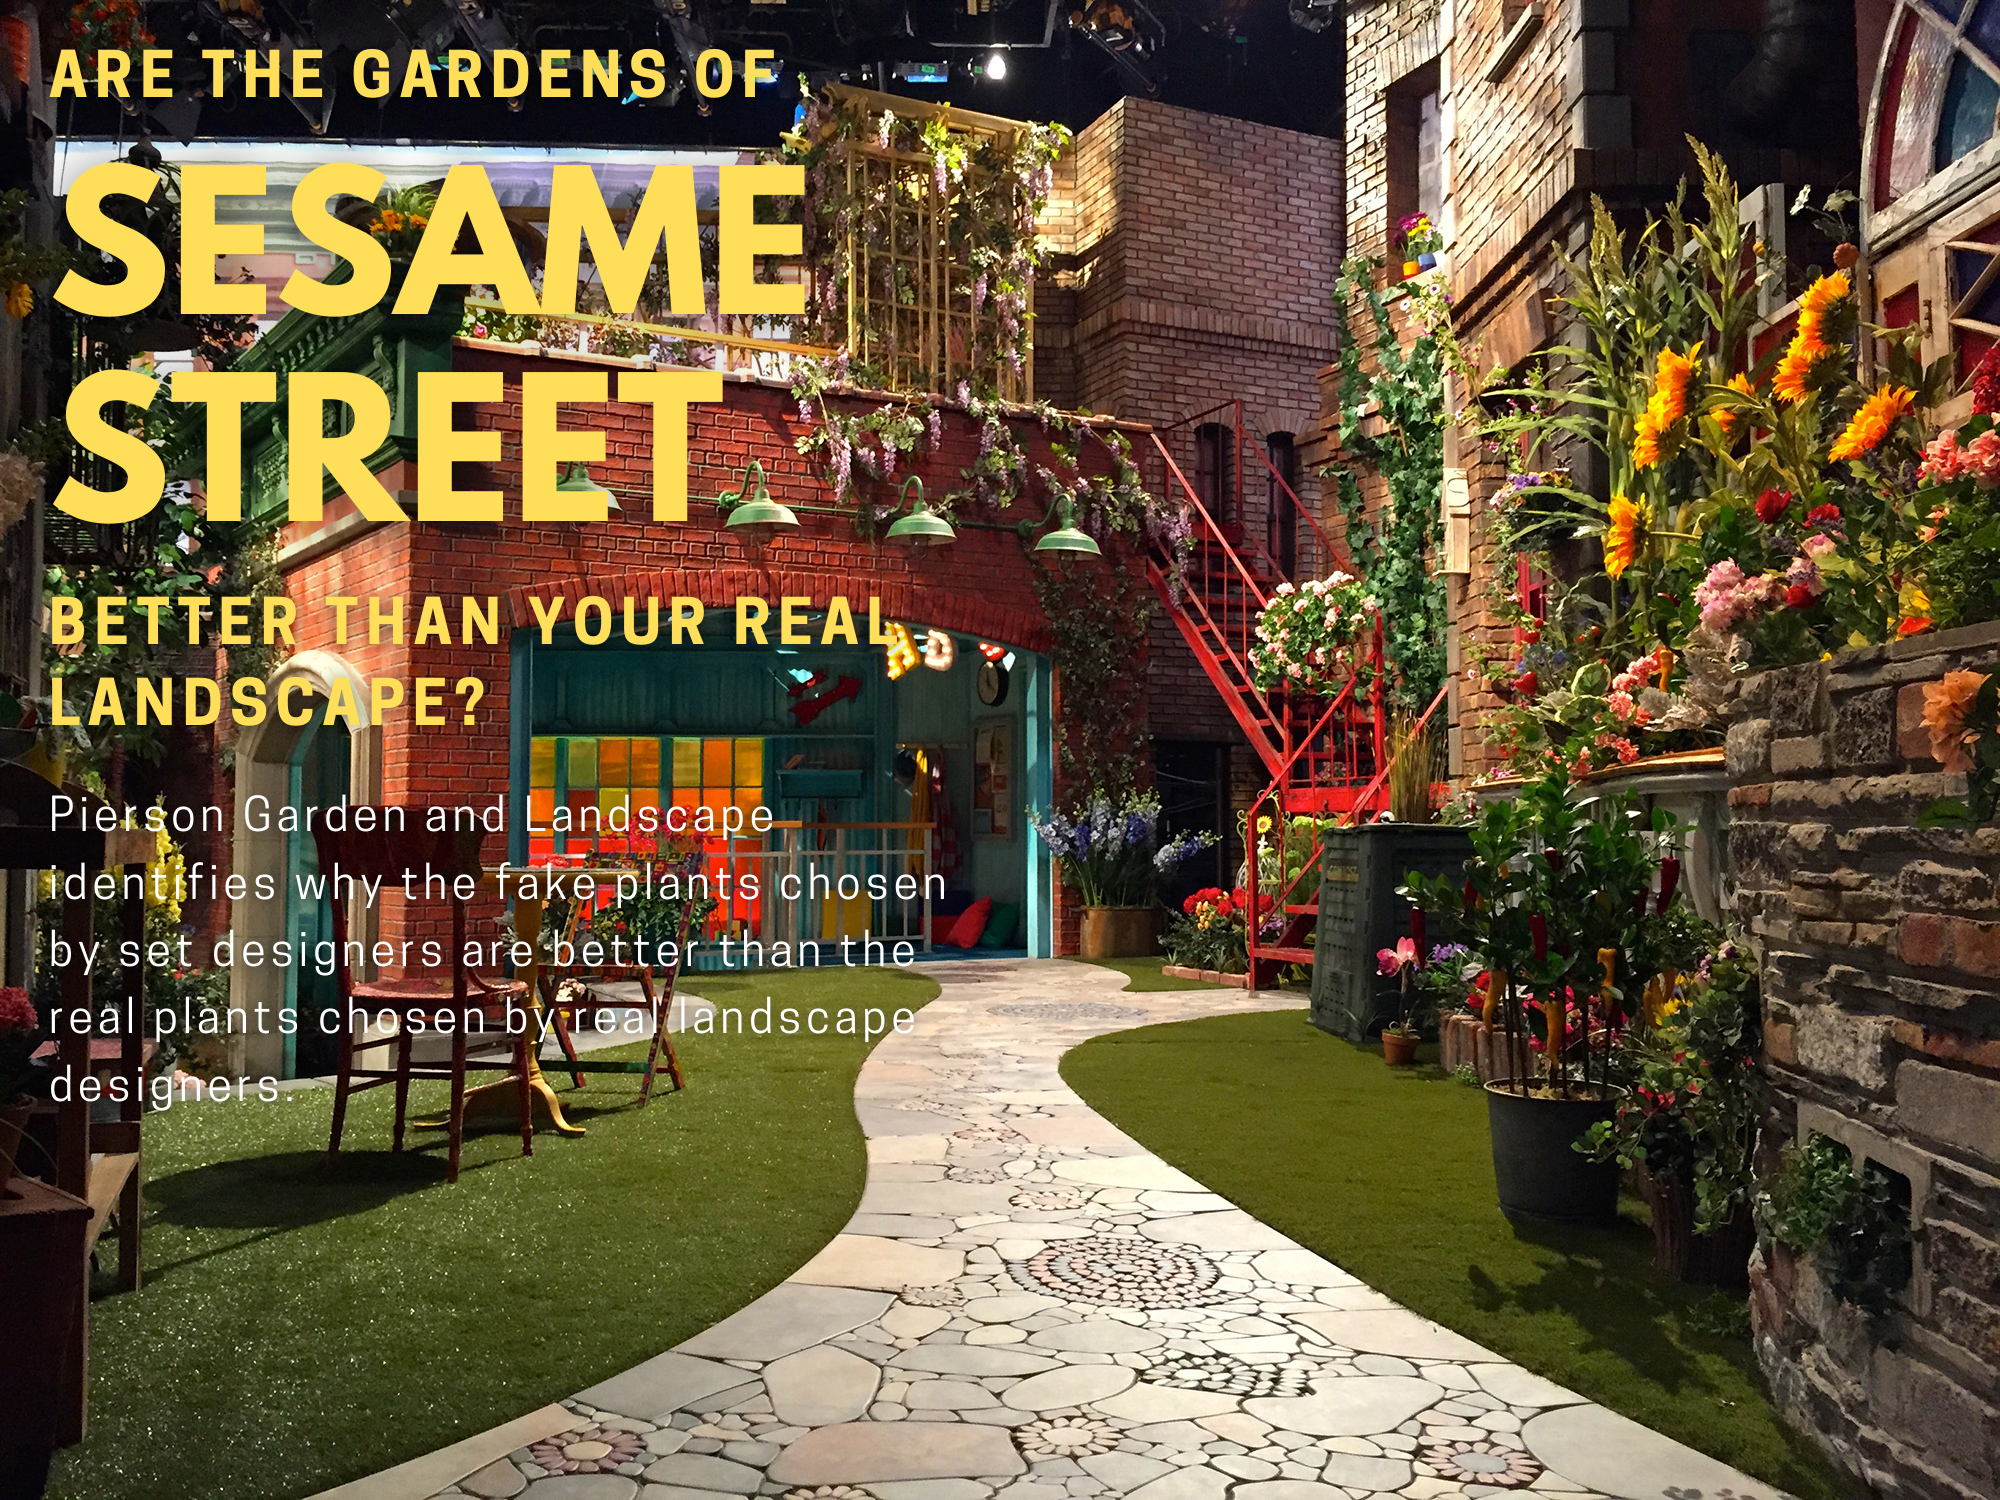 Pierson Garden and Landscape identifies why the fake plants of Sesame Street are better than your real landscape plants